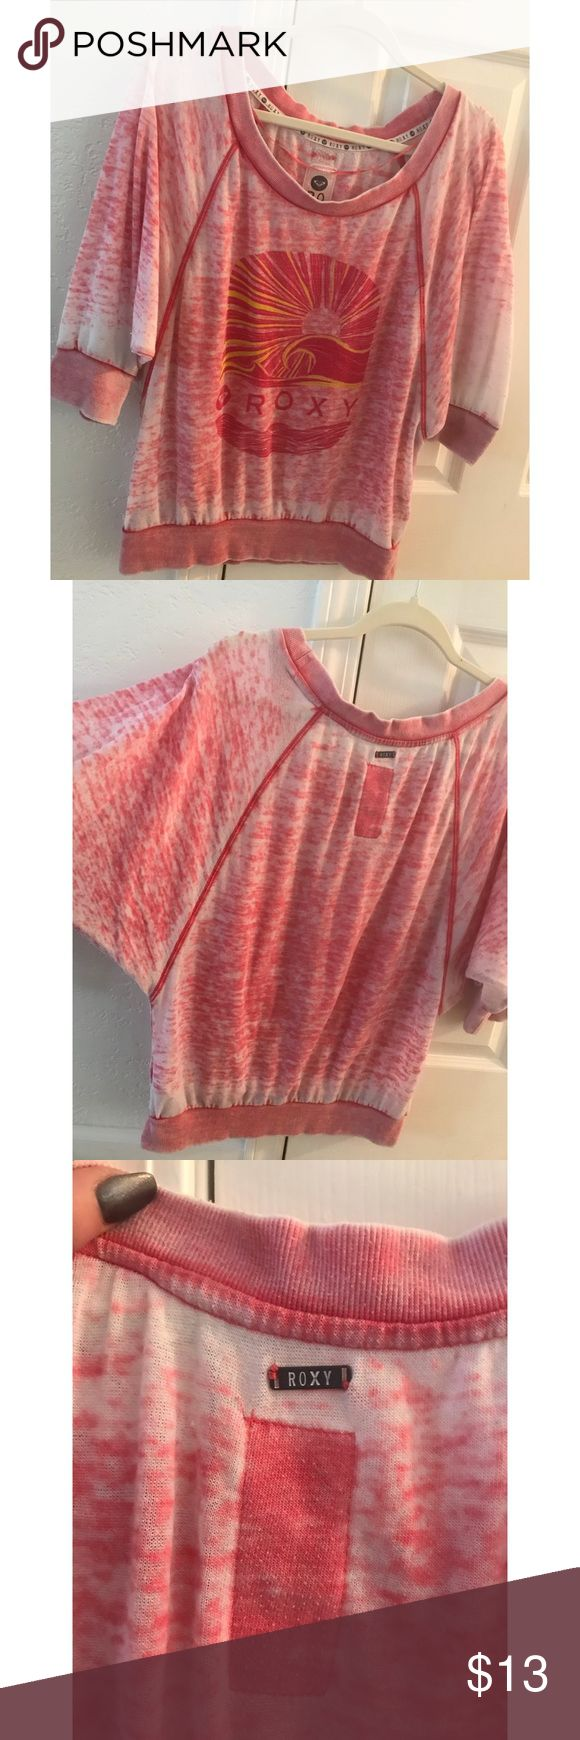 Roxy Top ☀️ Pink distressed look for a casual Roxy sun tee that can be hung off the shoulder. Perfect with jean shorts and your favorite sandals 😊 Roxy Tops Tees - Short Sleeve